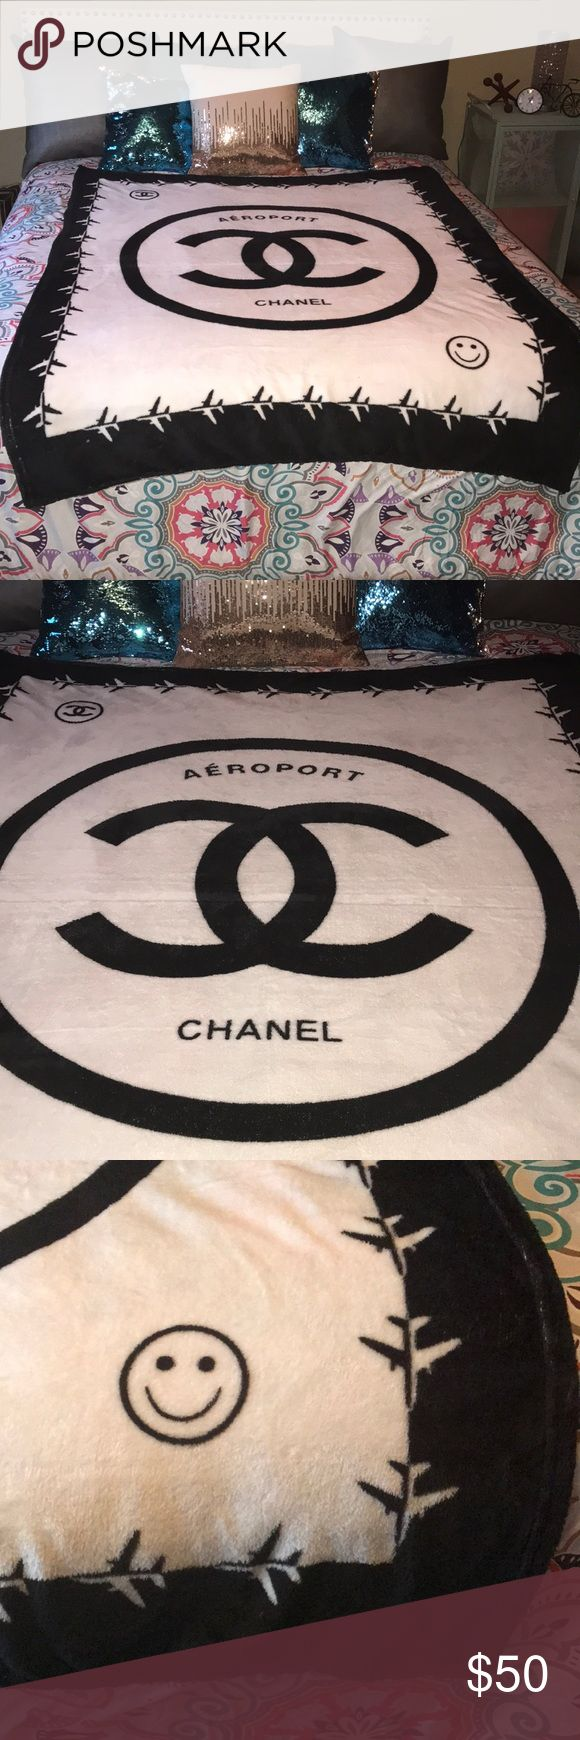 Chanel VIP Aero Sport Blanket throw 5'x4' Chanel VIP throw blanket with CC logo Aero Sport.  Blanket measures 4' wide and 5' Long. Would fit on twin bed to add to Chanel decor or use as a throw. Blanket is very thin soft fleece material. Will not keep you very warm.  This is a vip item and made in China. Comes with plastic bag. Perfume and smoke free home CHANEL Accessories